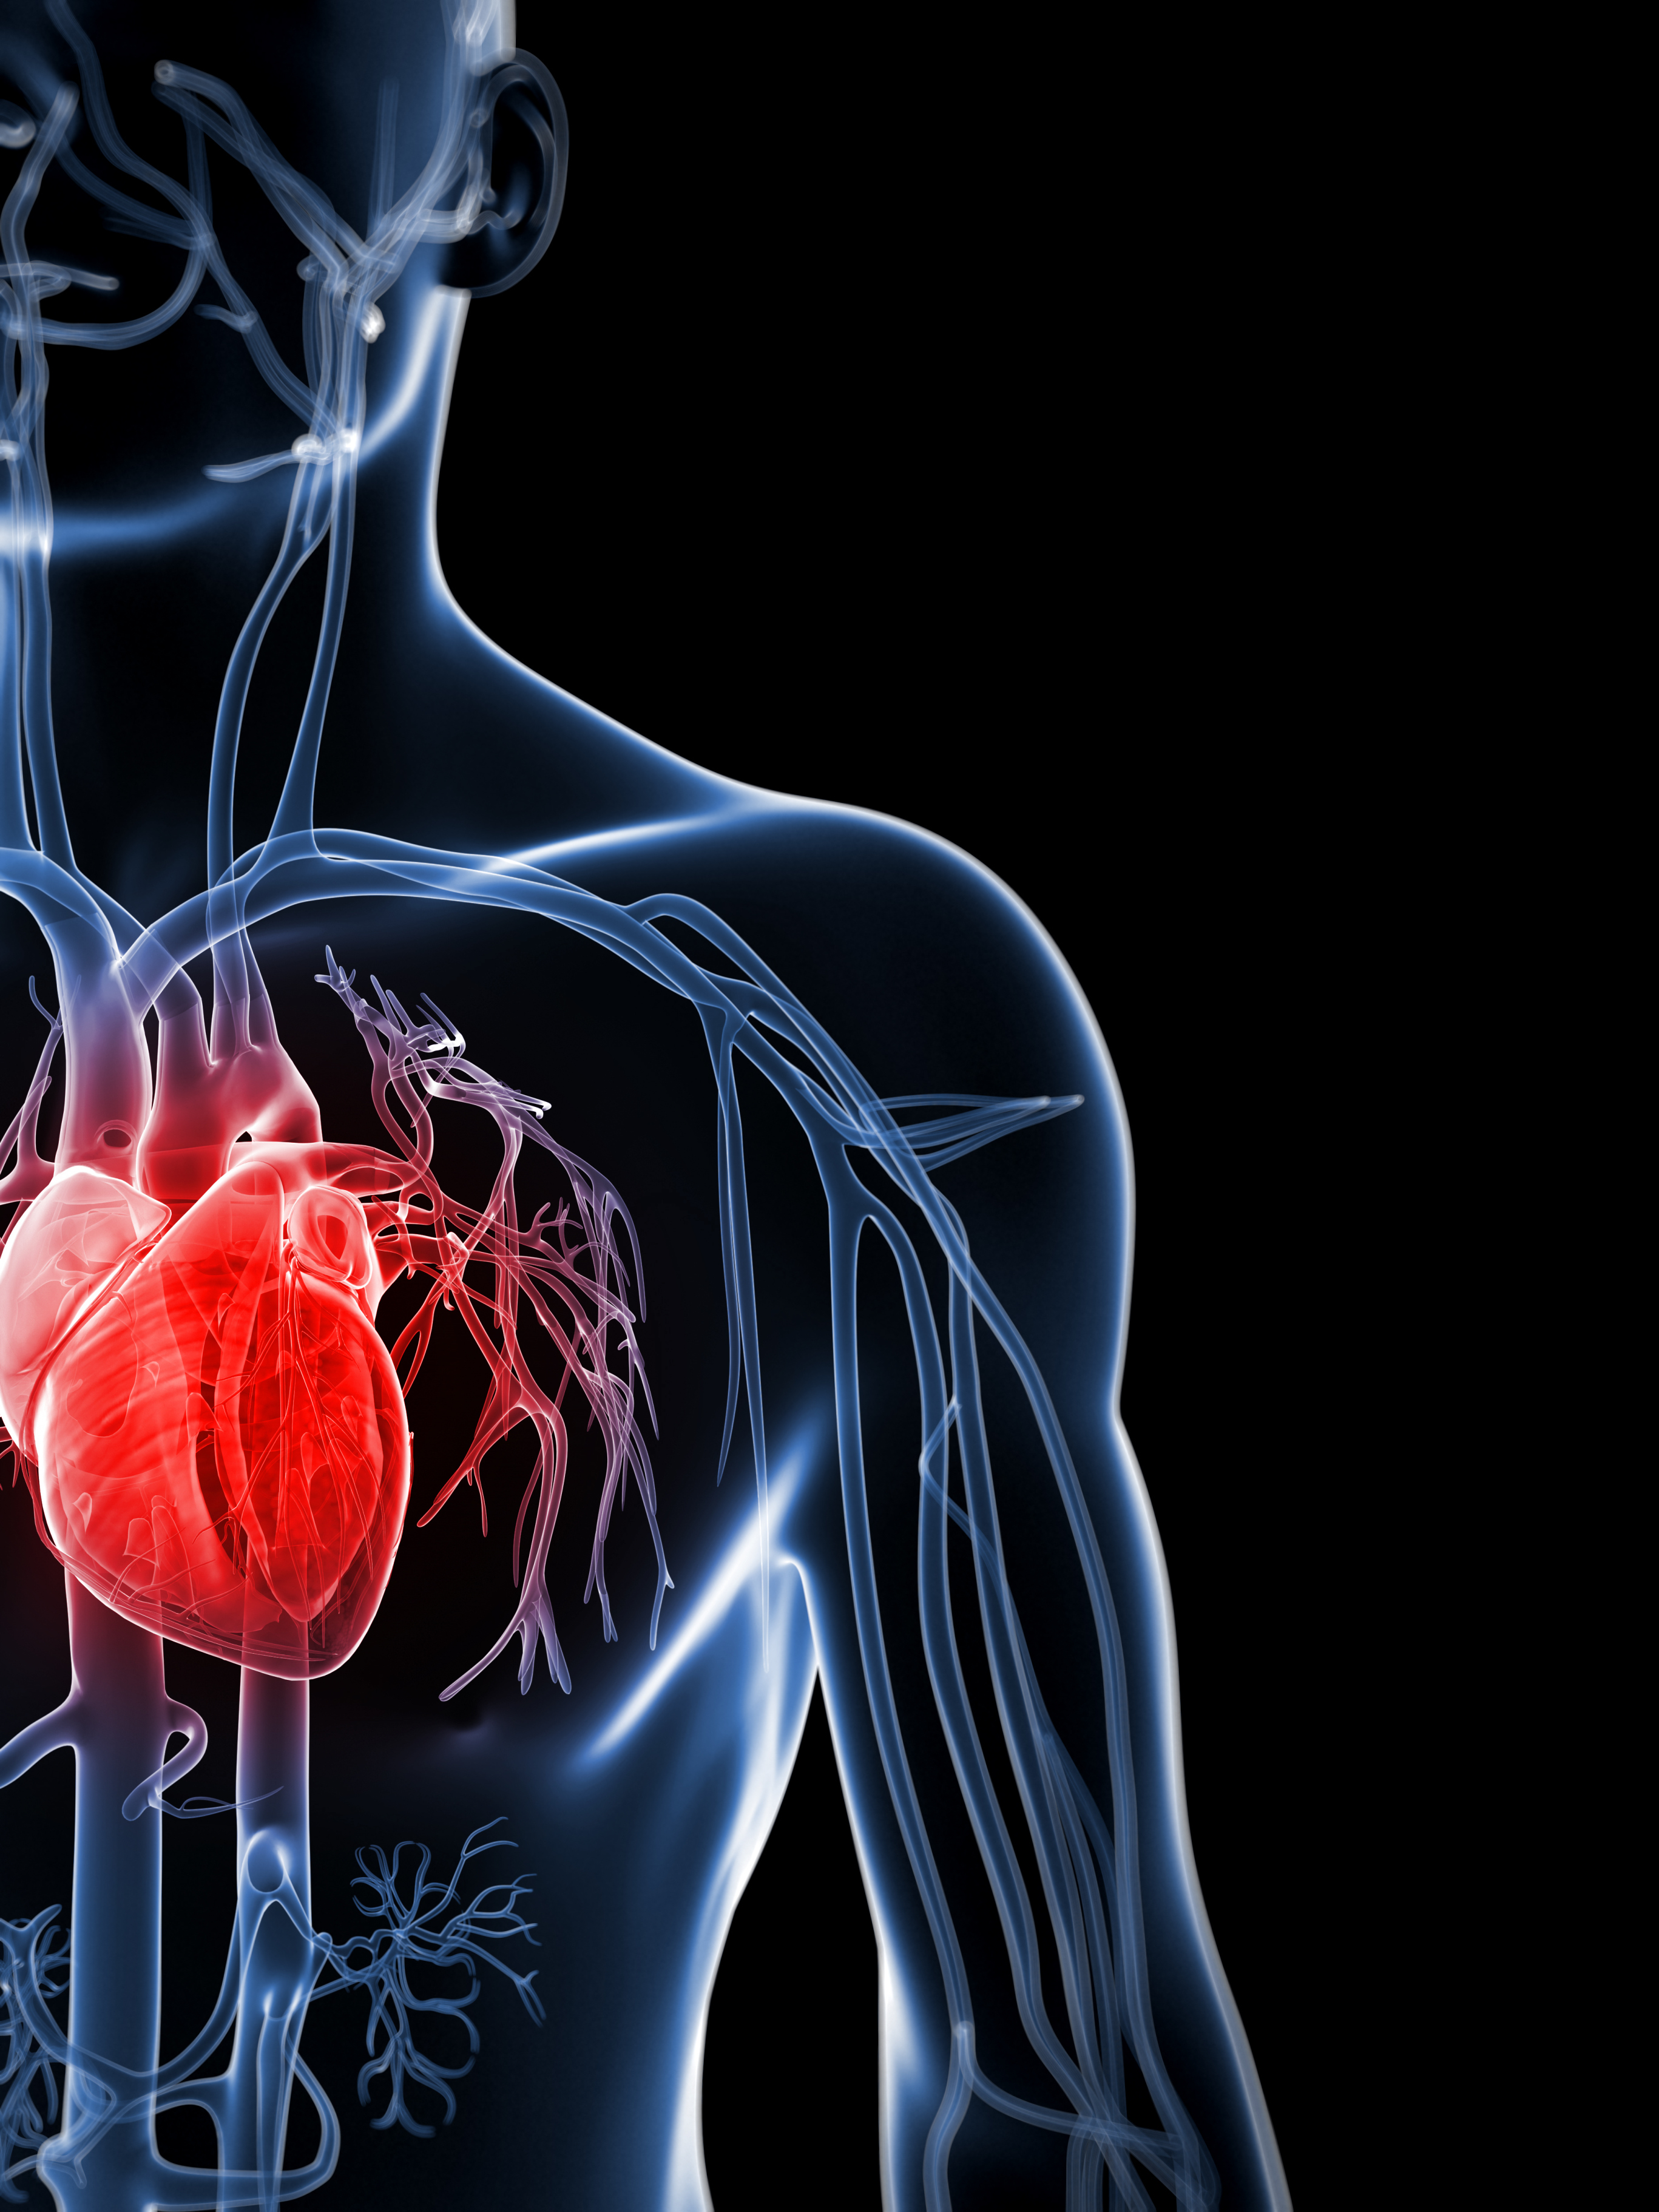 Heart health: Warning signs and lifestyle changes